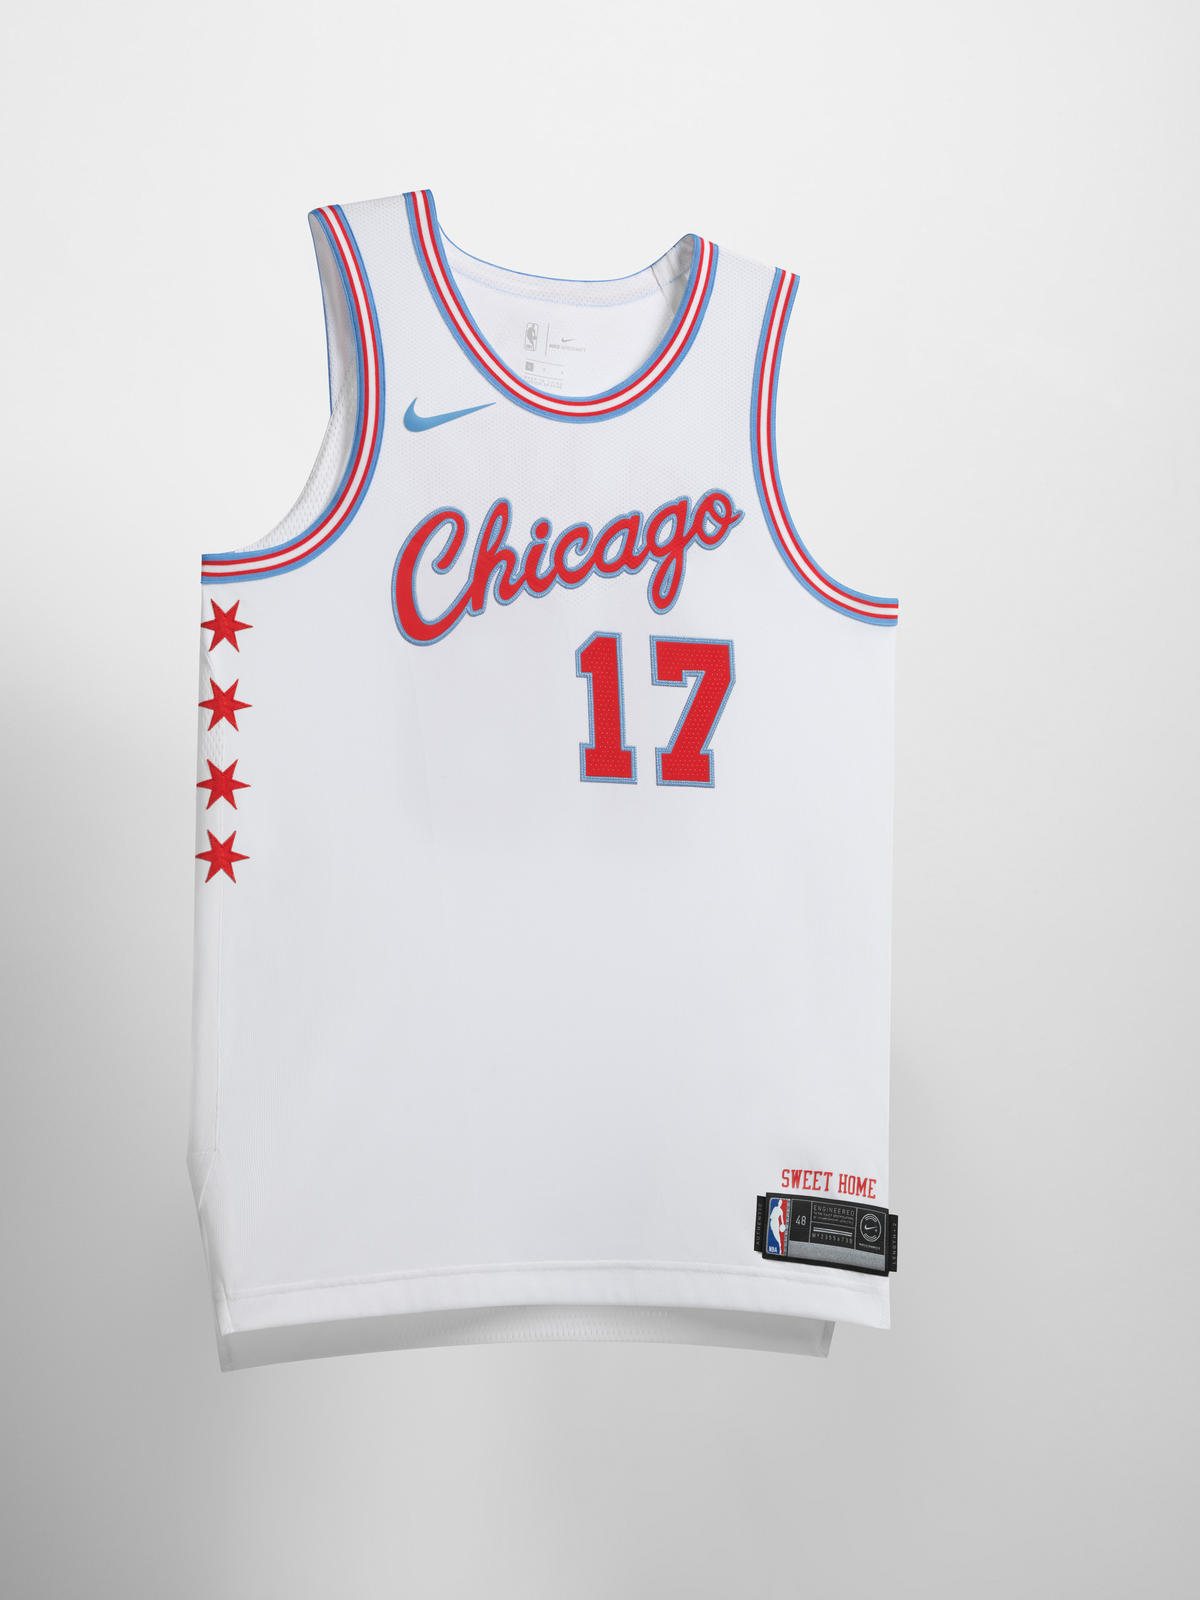 2c7952e011b Nike NBA City Edition Uniform 42. Chicago Bulls